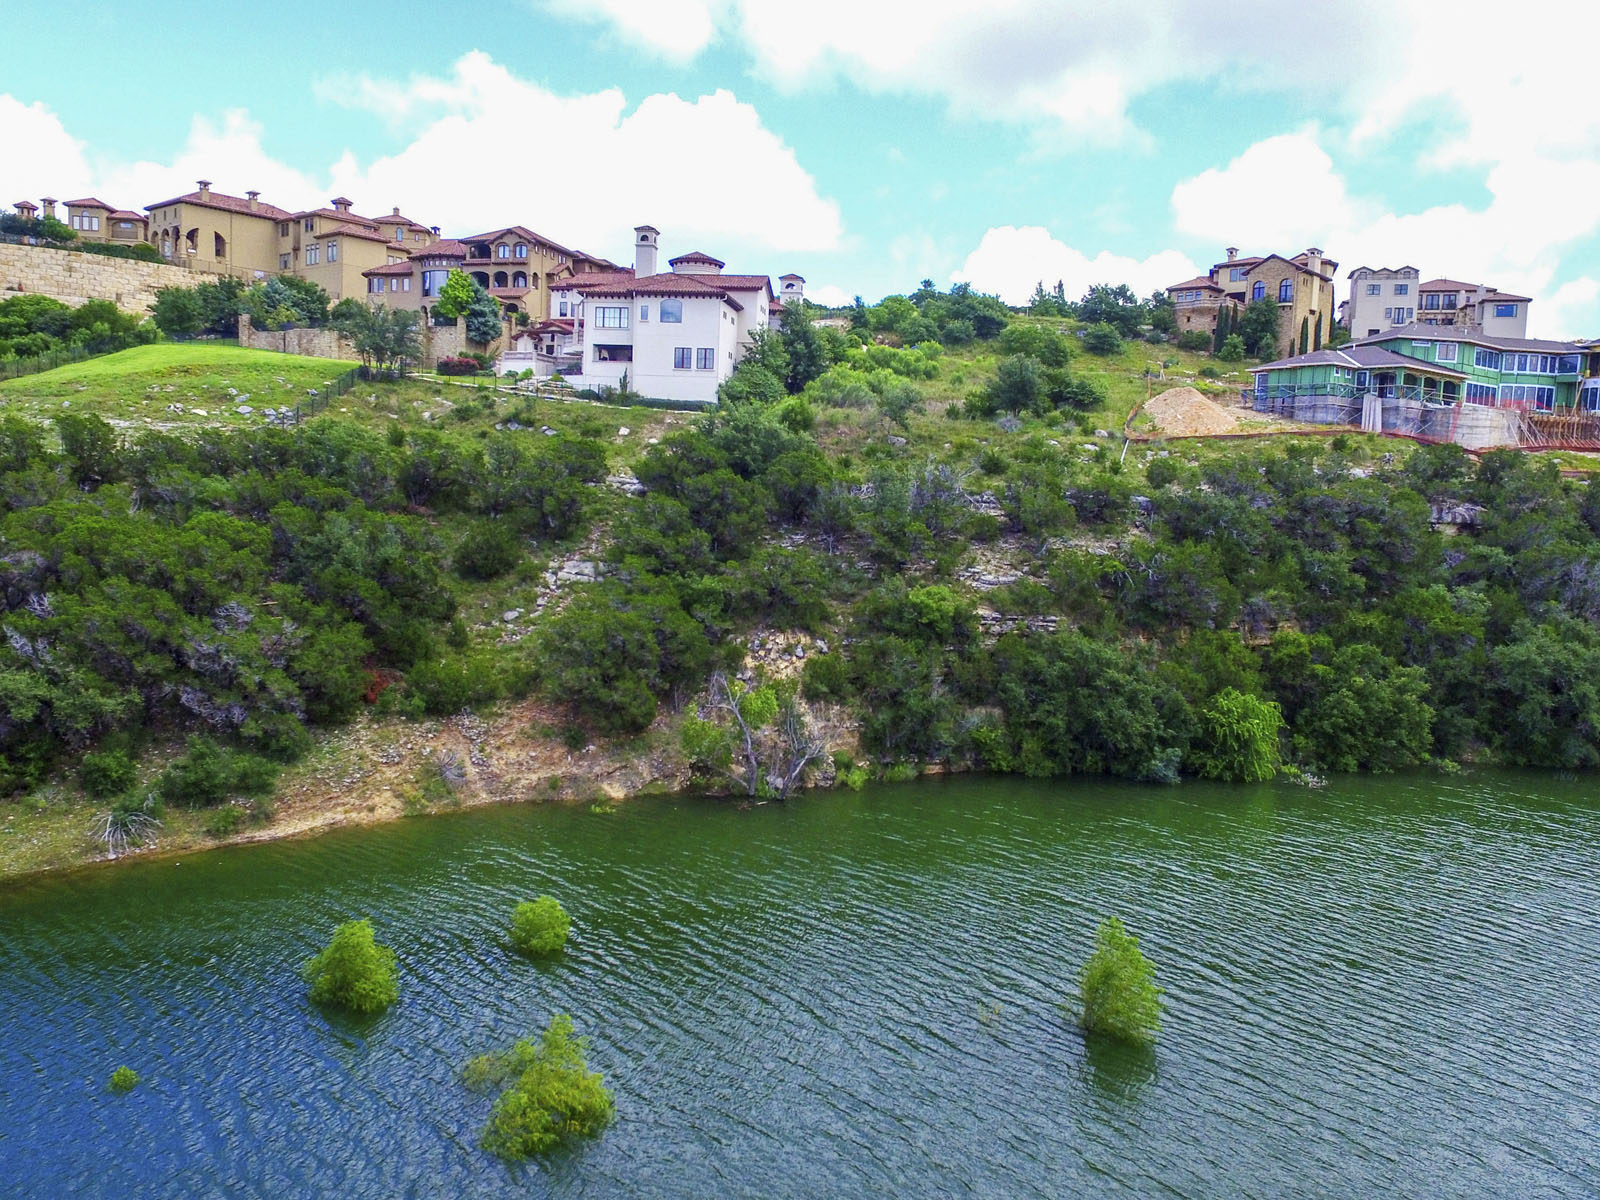 Land for Sale at Prettiest Street in Rough Hollow 215 Canyon Turn Trl Austin, Texas 78734 United States